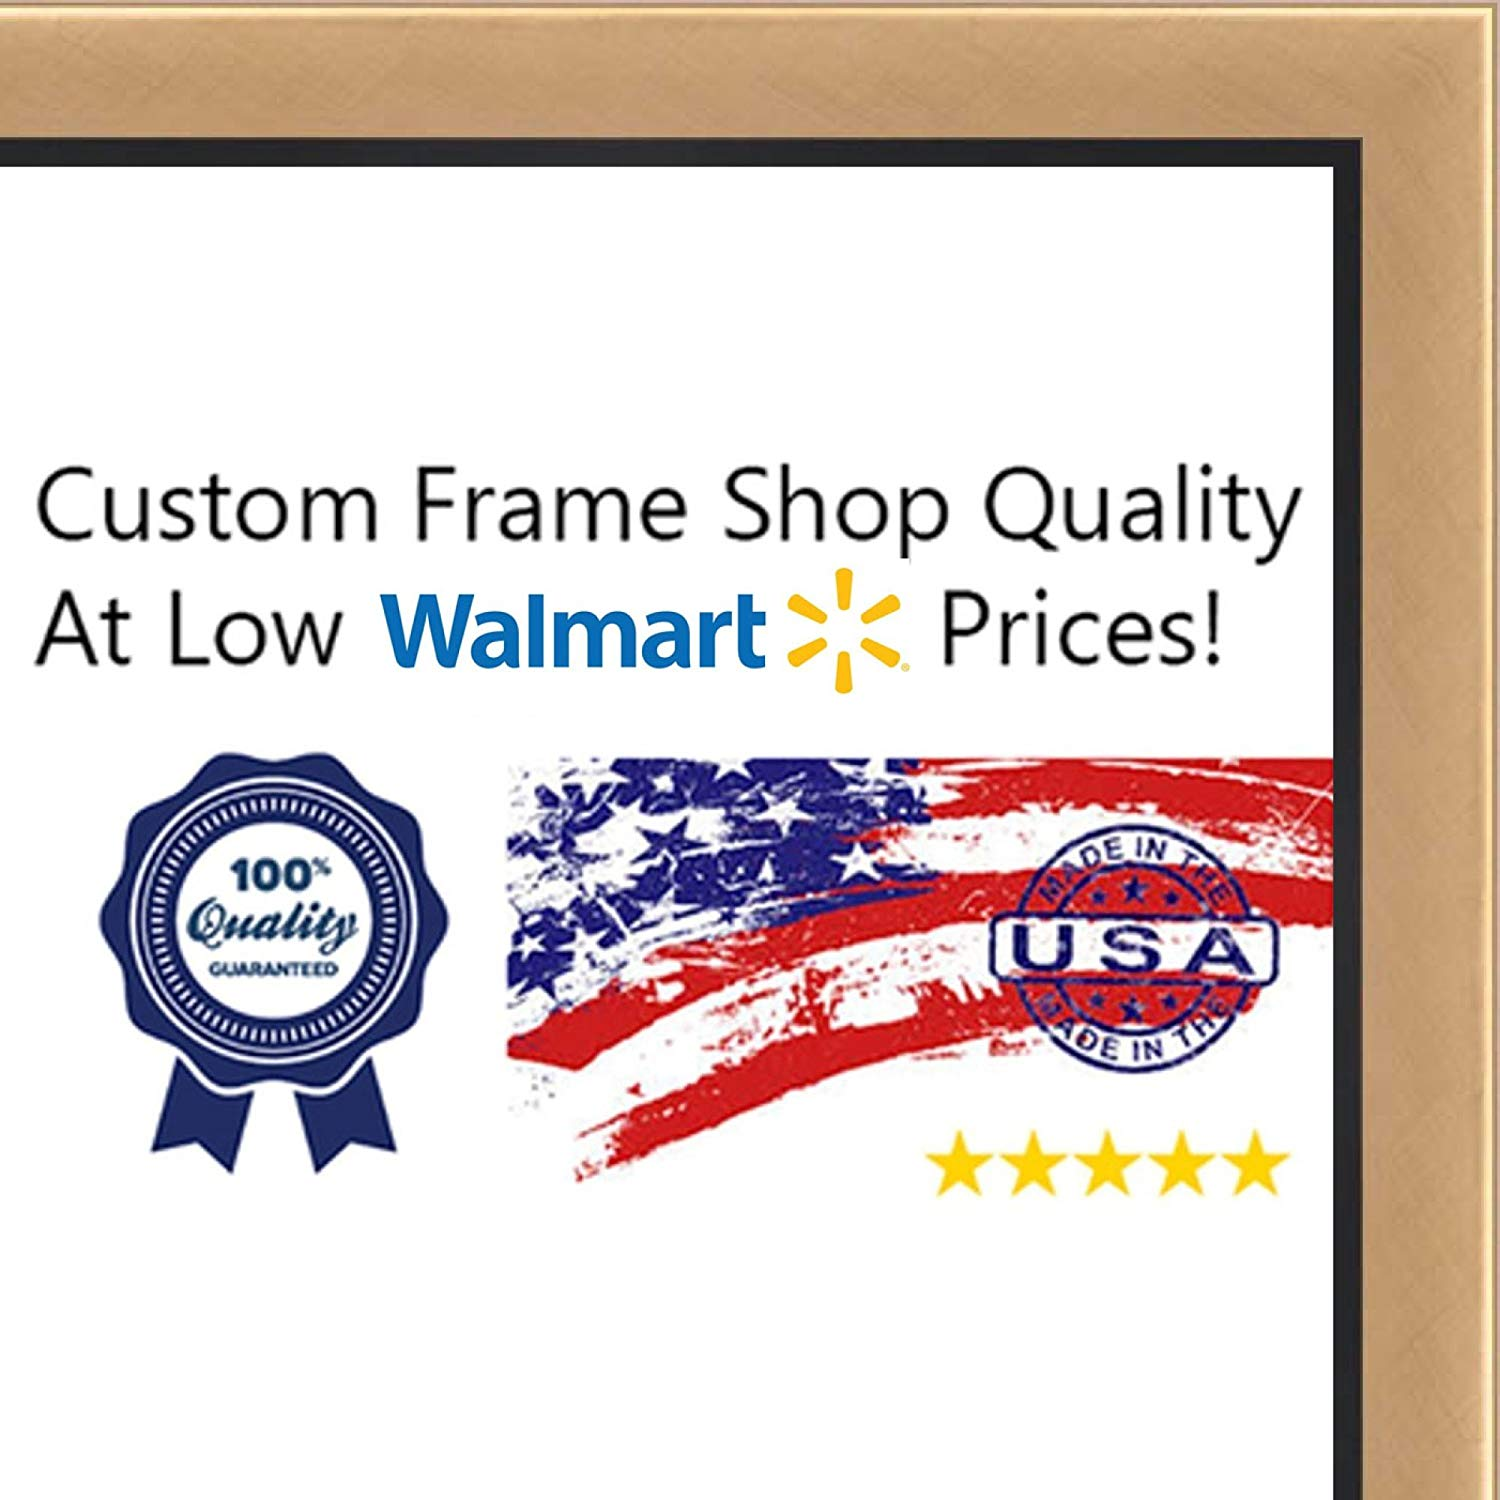 14x18-14 x 18 Gold With Black Lip Solid Wood Frame with UV Framer's Acrylic &